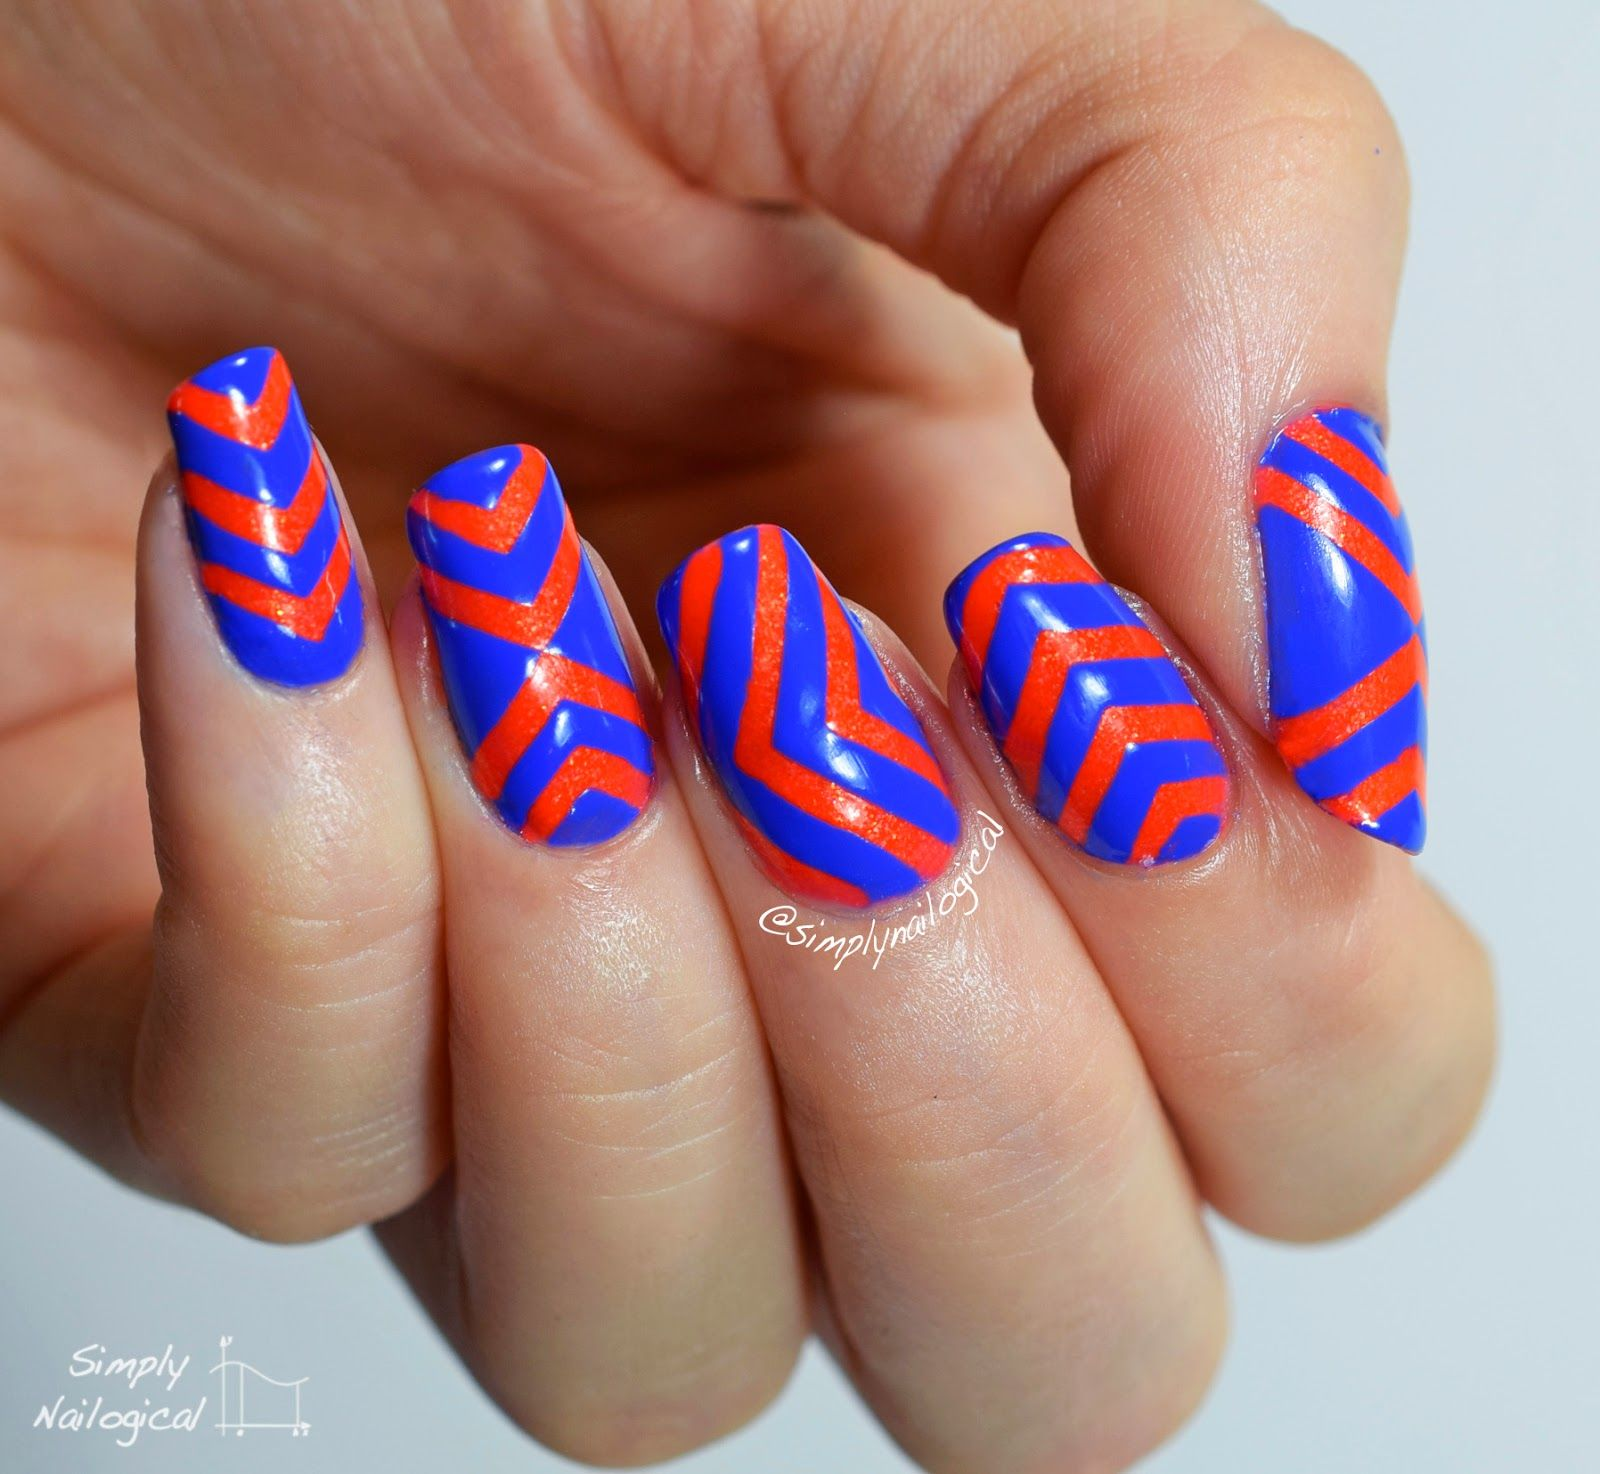 Simply Nailogical Nail Art: Saving Pacific Blue By The Chevron By Simplynailogical